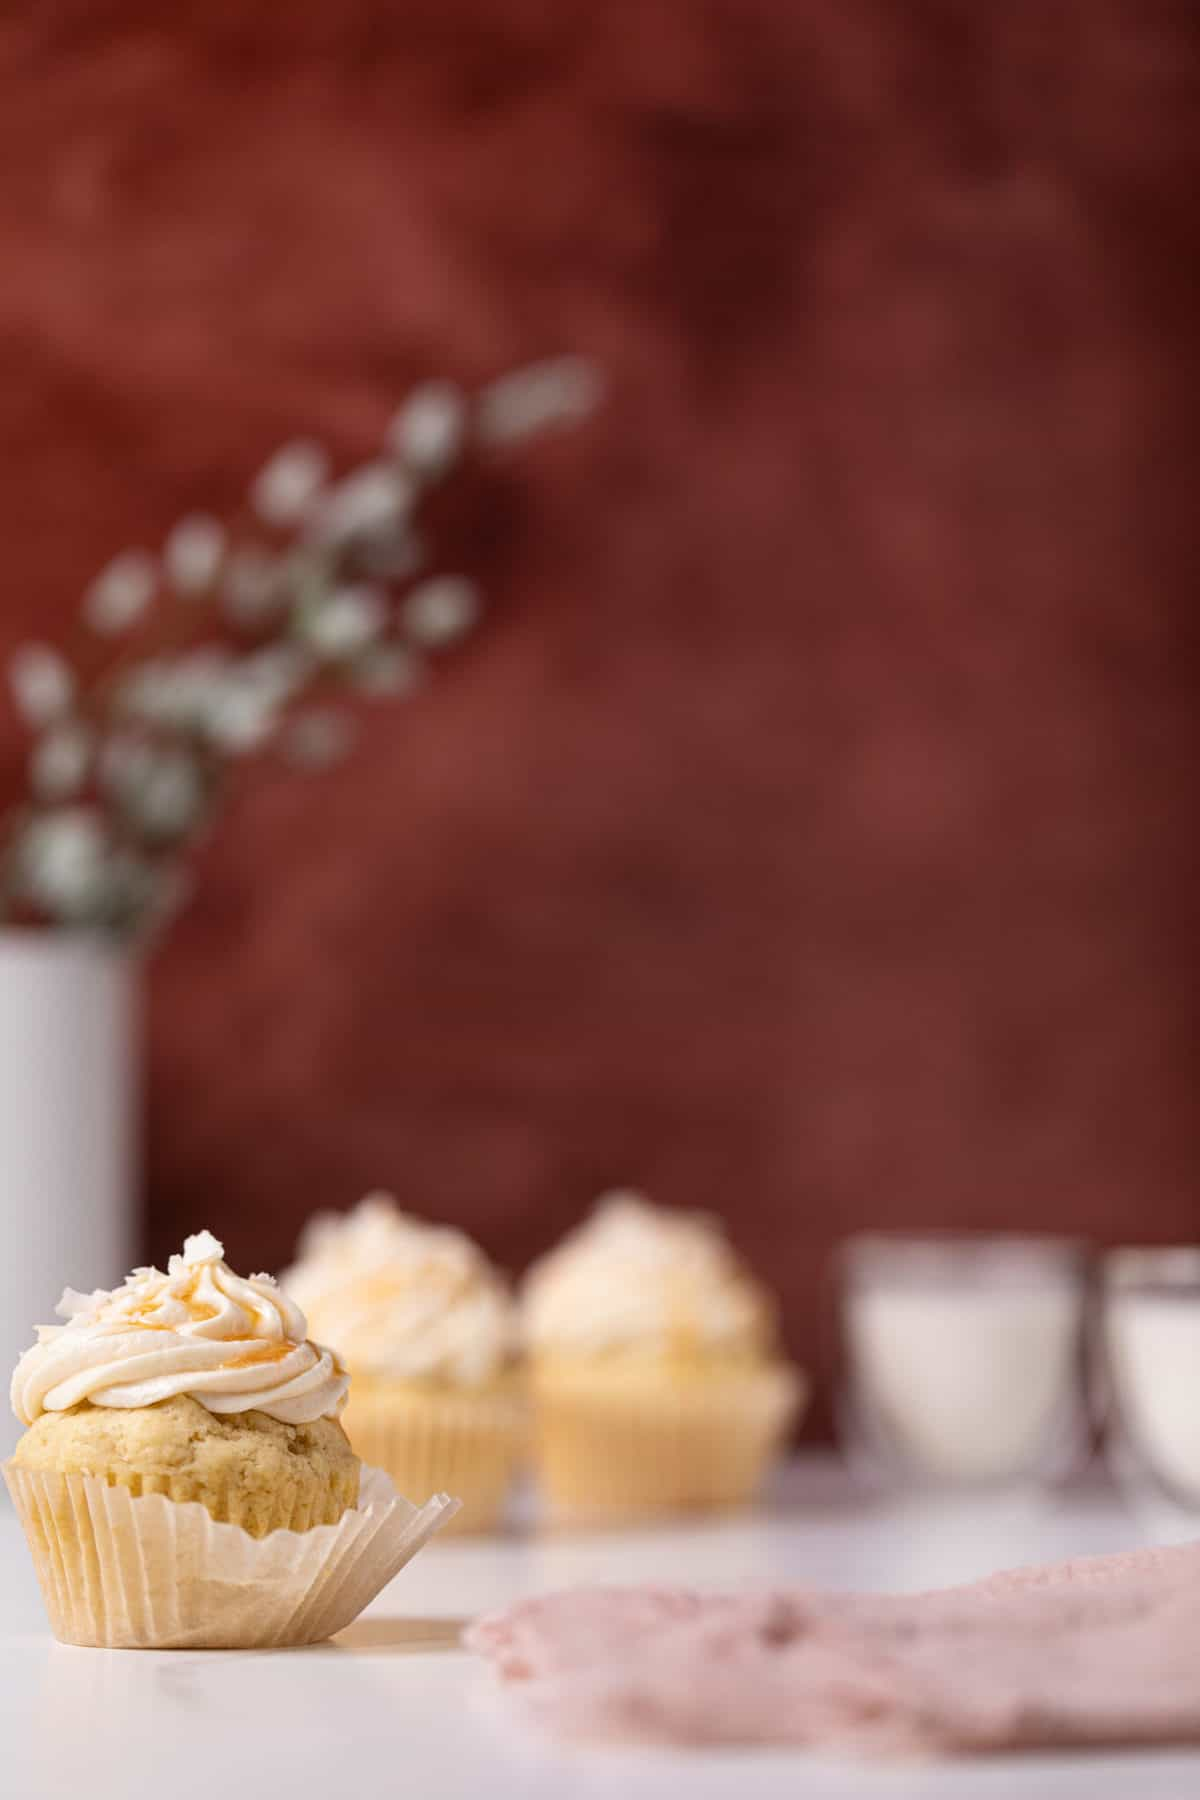 Easy Caramel Coconut Cupcakes in paper wrappers on a white surface with a red background